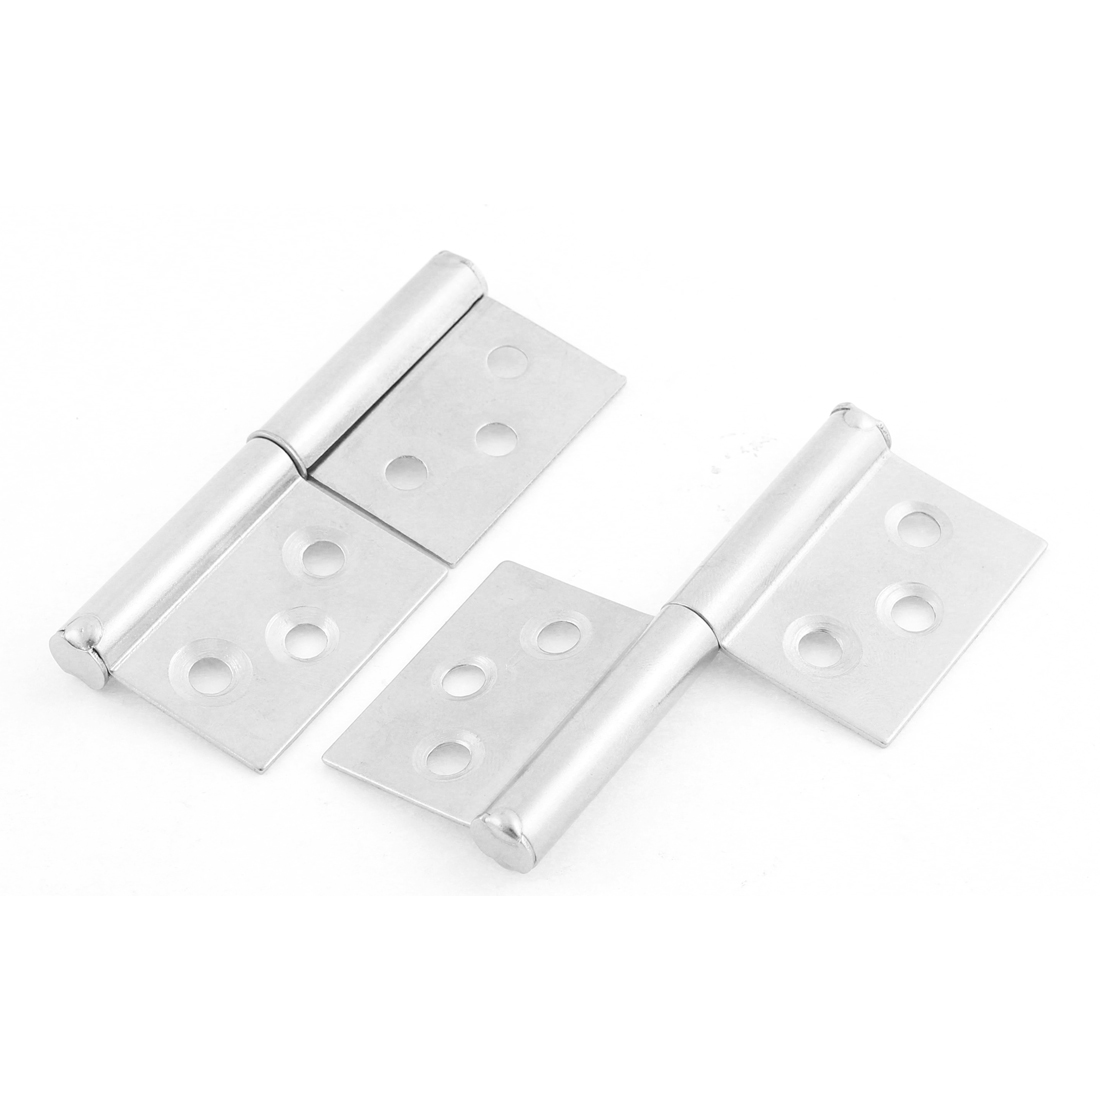 "2pcs 3"" Long Silver Tone Rectangle Stianless Steel Security Butt Hinge for Cabinet Drawer Door"